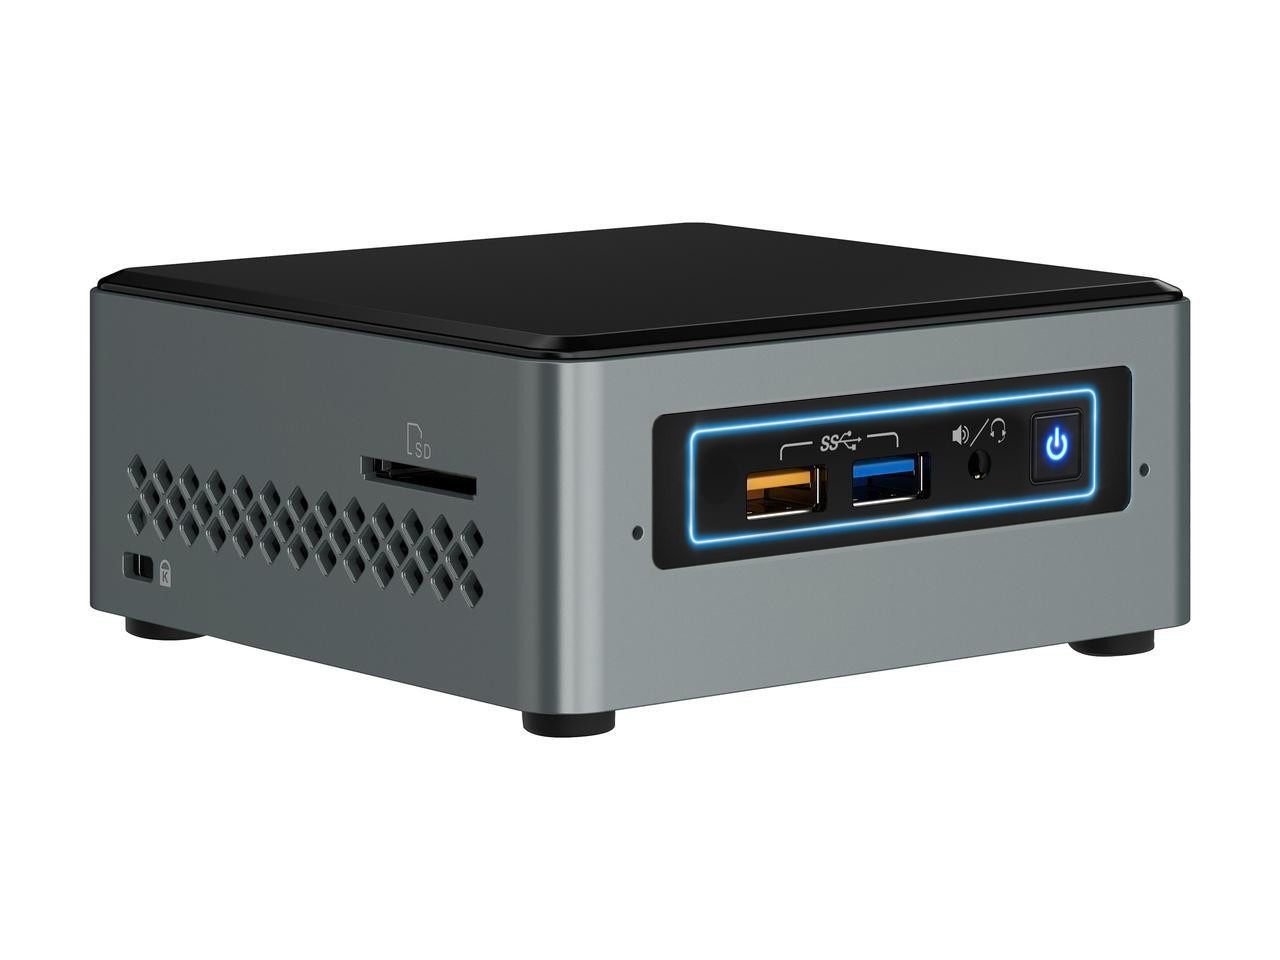 Home Server (Side View)